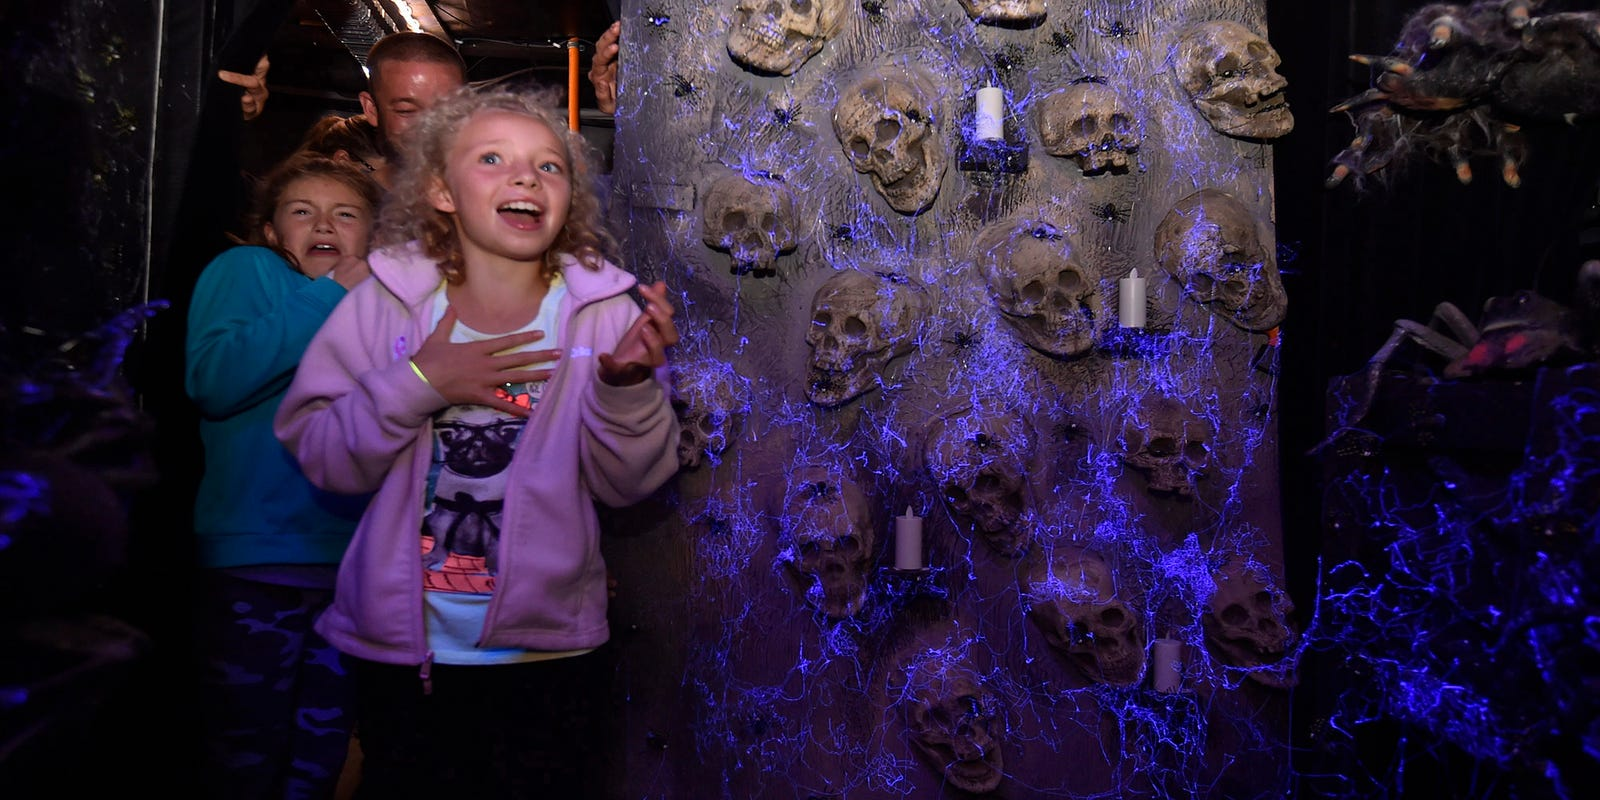 Get freaked out at these 11 haunted attractions in Brown, Oconto and Door counties